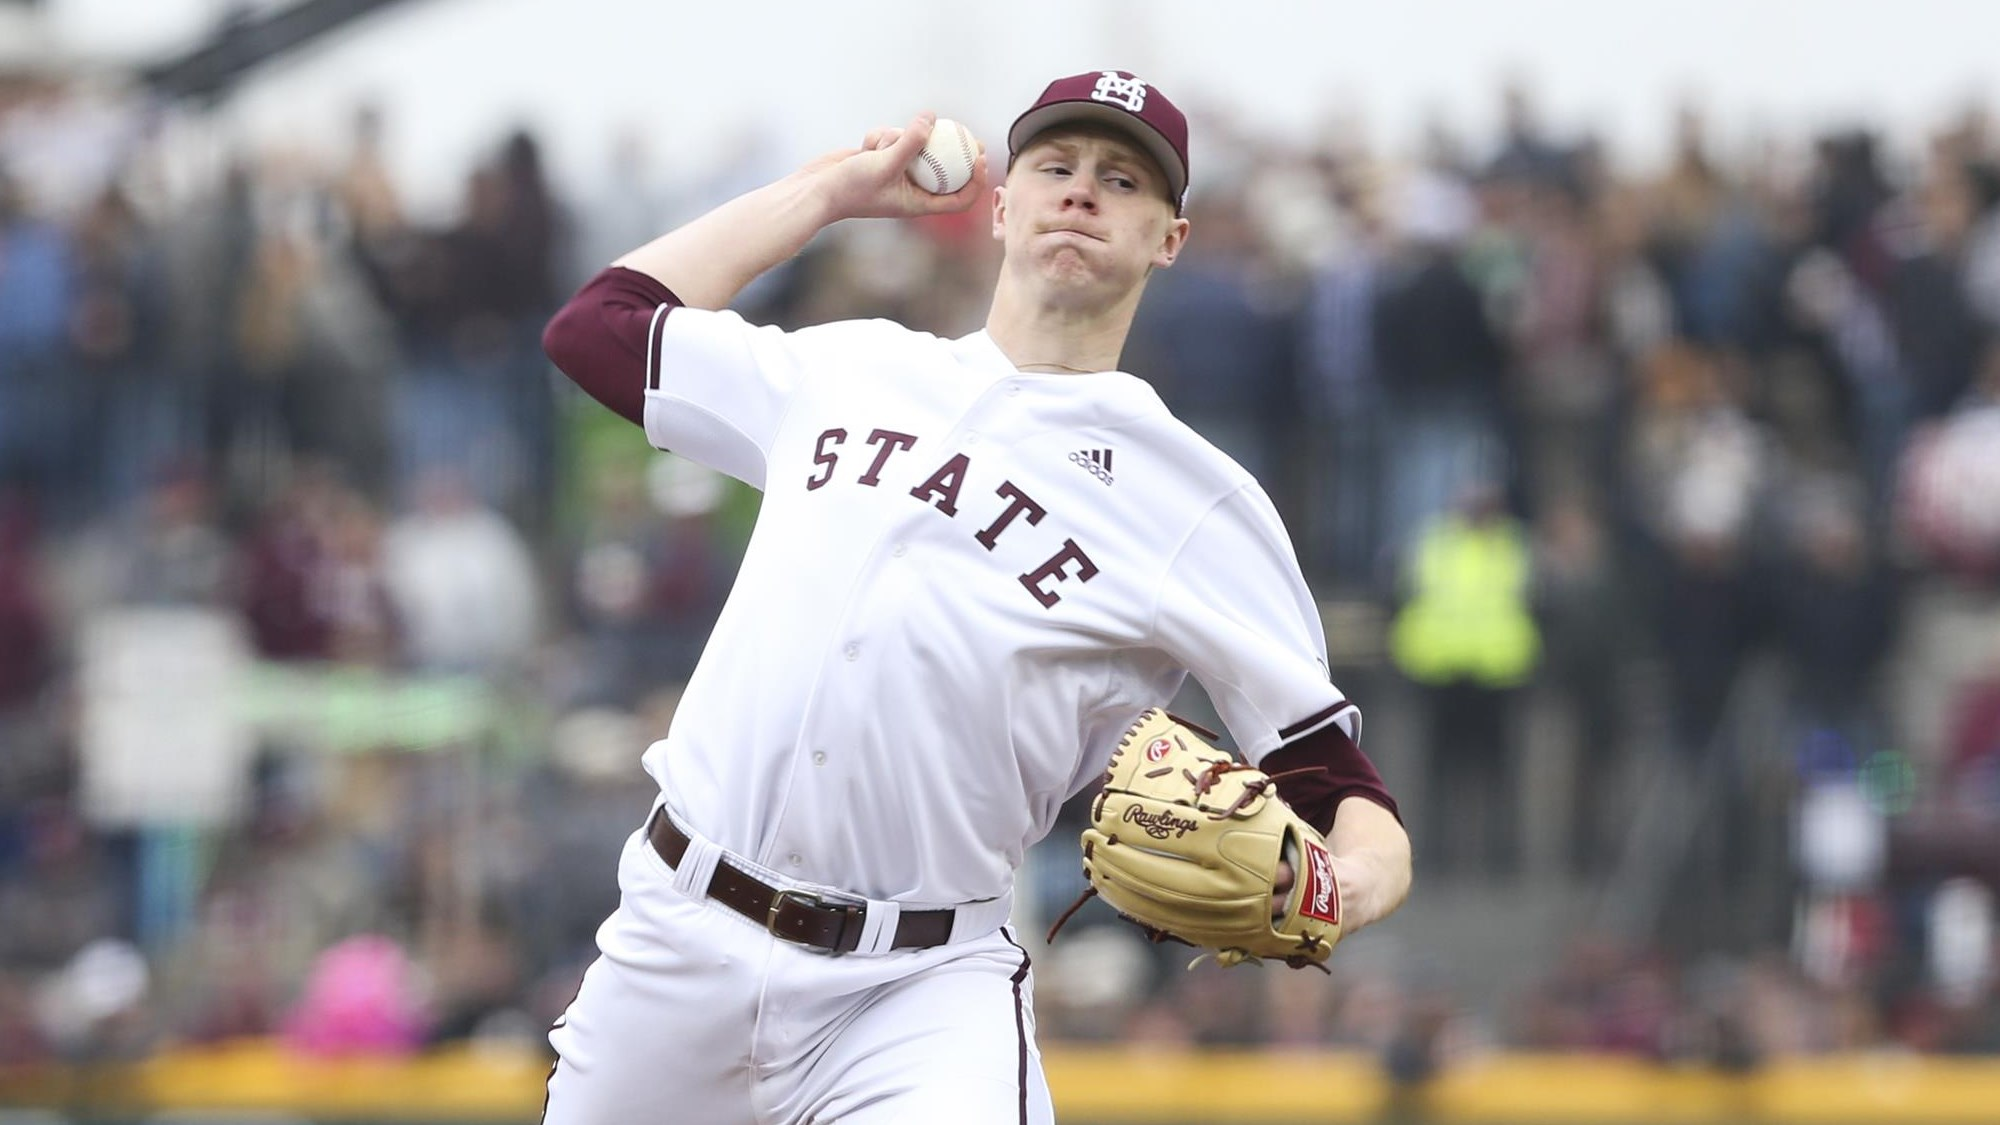 Great Lake Canadians and Junior National Team alum Eric Cerantola (Oakville, Ont.) was part of the Mississippi State team that defeated Stanford in the Starkville Super Regional. Photo: Mississippi State Athletics